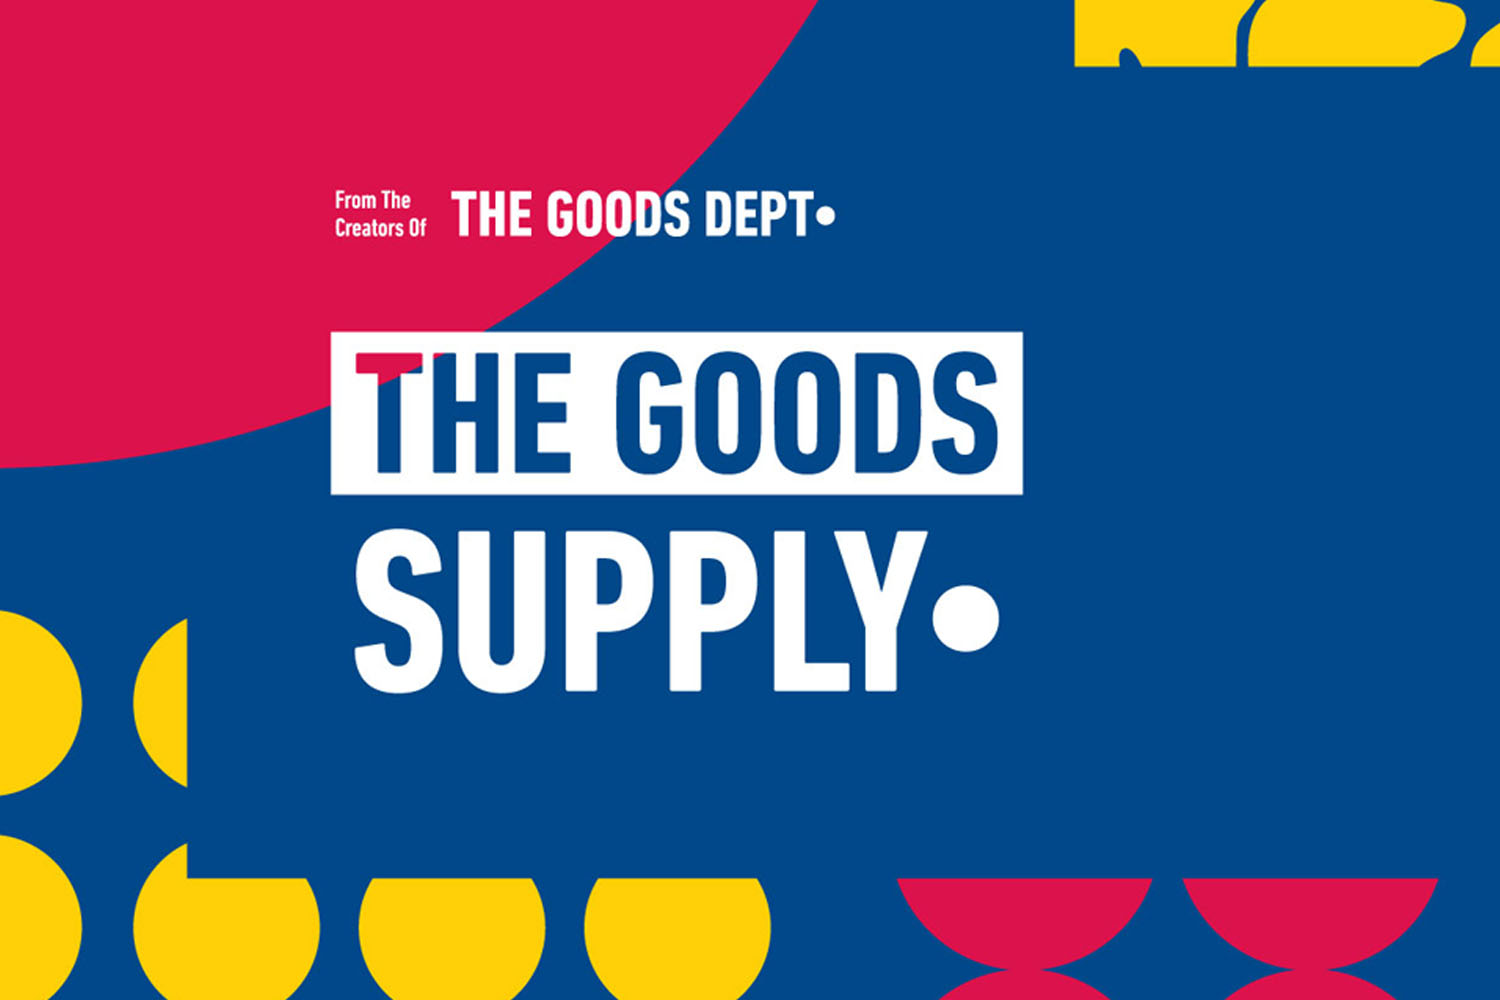 The Goods Supply Indonesia